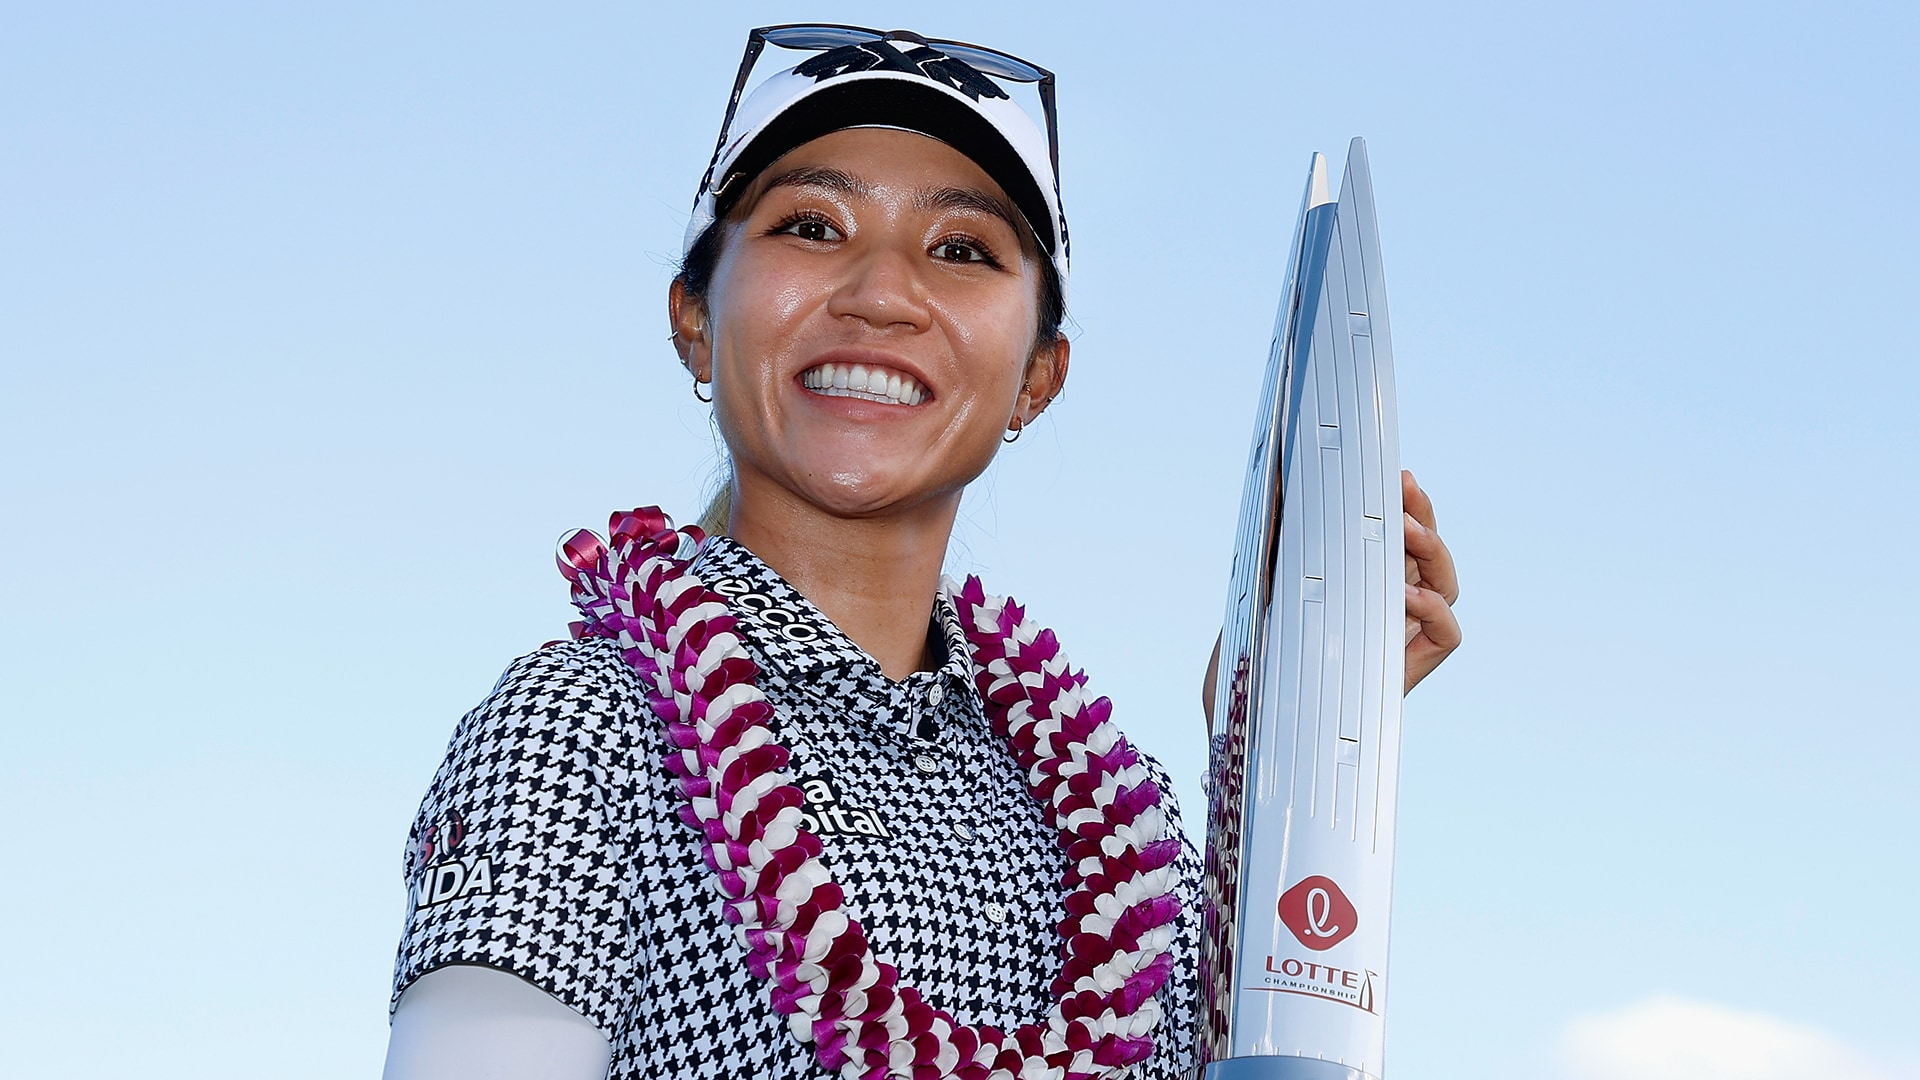 Lydia Ko holding LOTTE Championship trophy